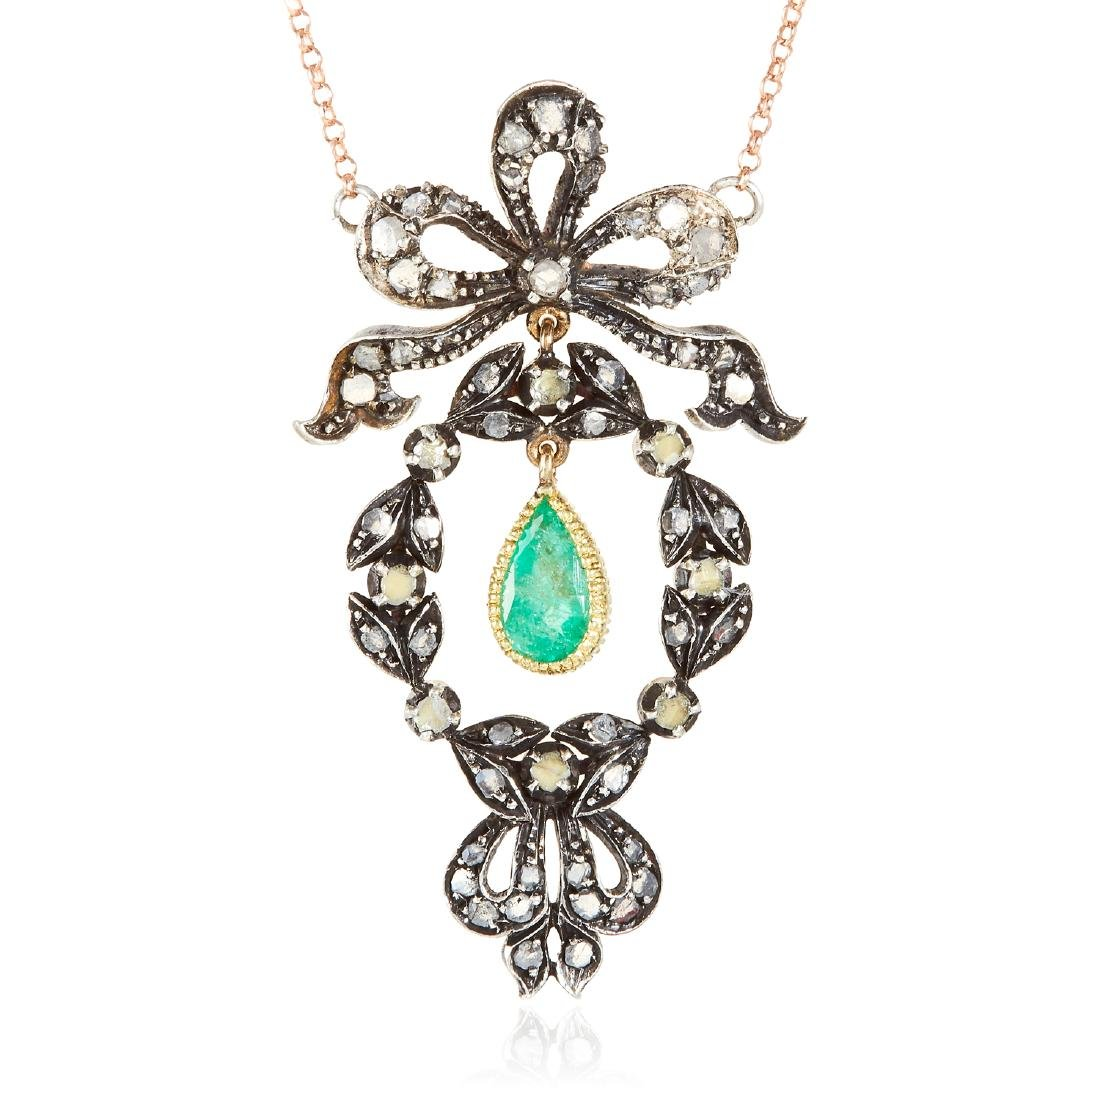 AN ANTIQUE EMERALD AND DIAMOND PENDANT NECKLACE,